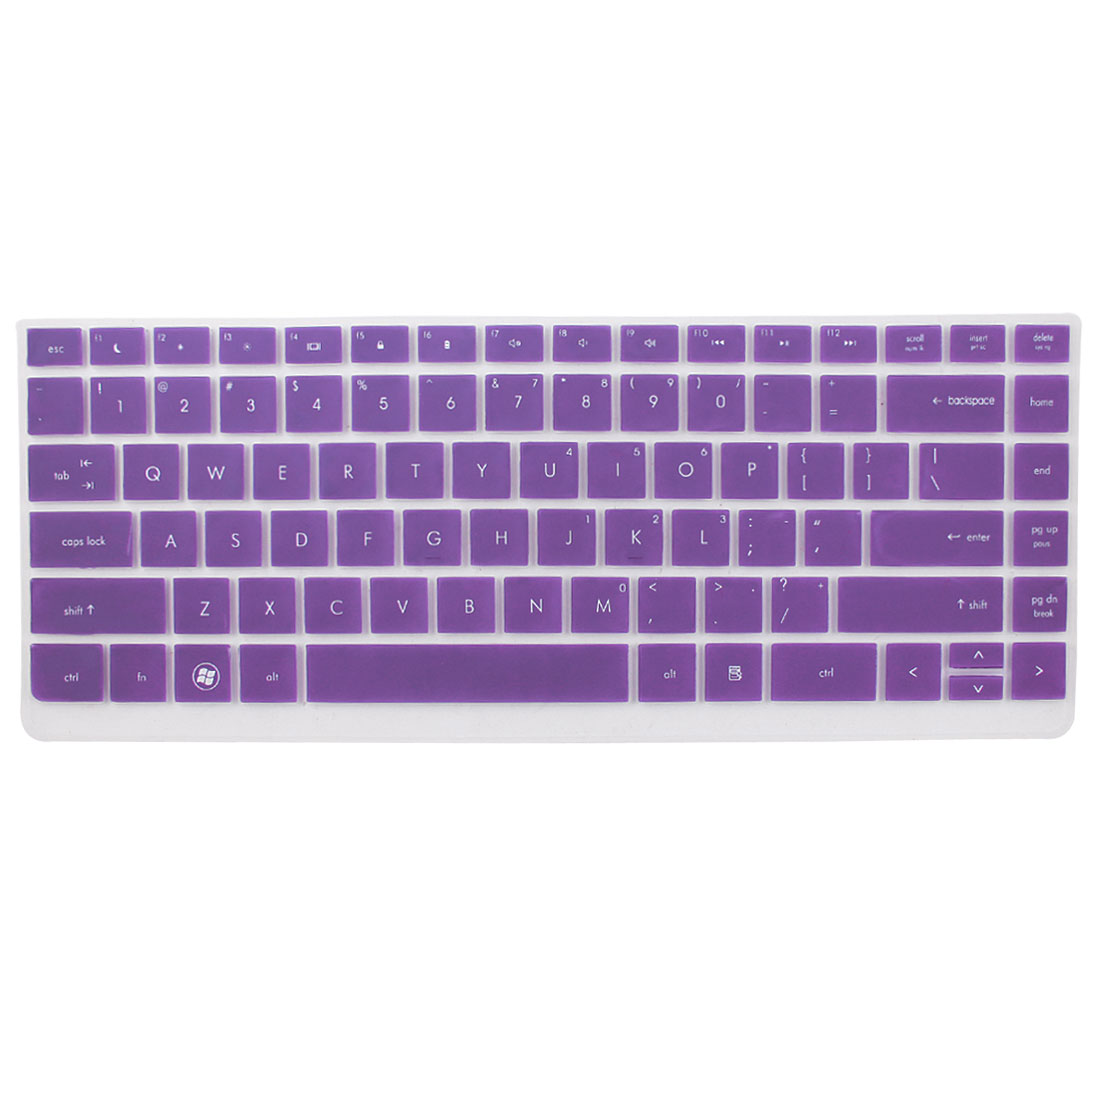 Laptop Keyboard Protector Film Purple Clear for HP Probook 4331S/4336S/4330S